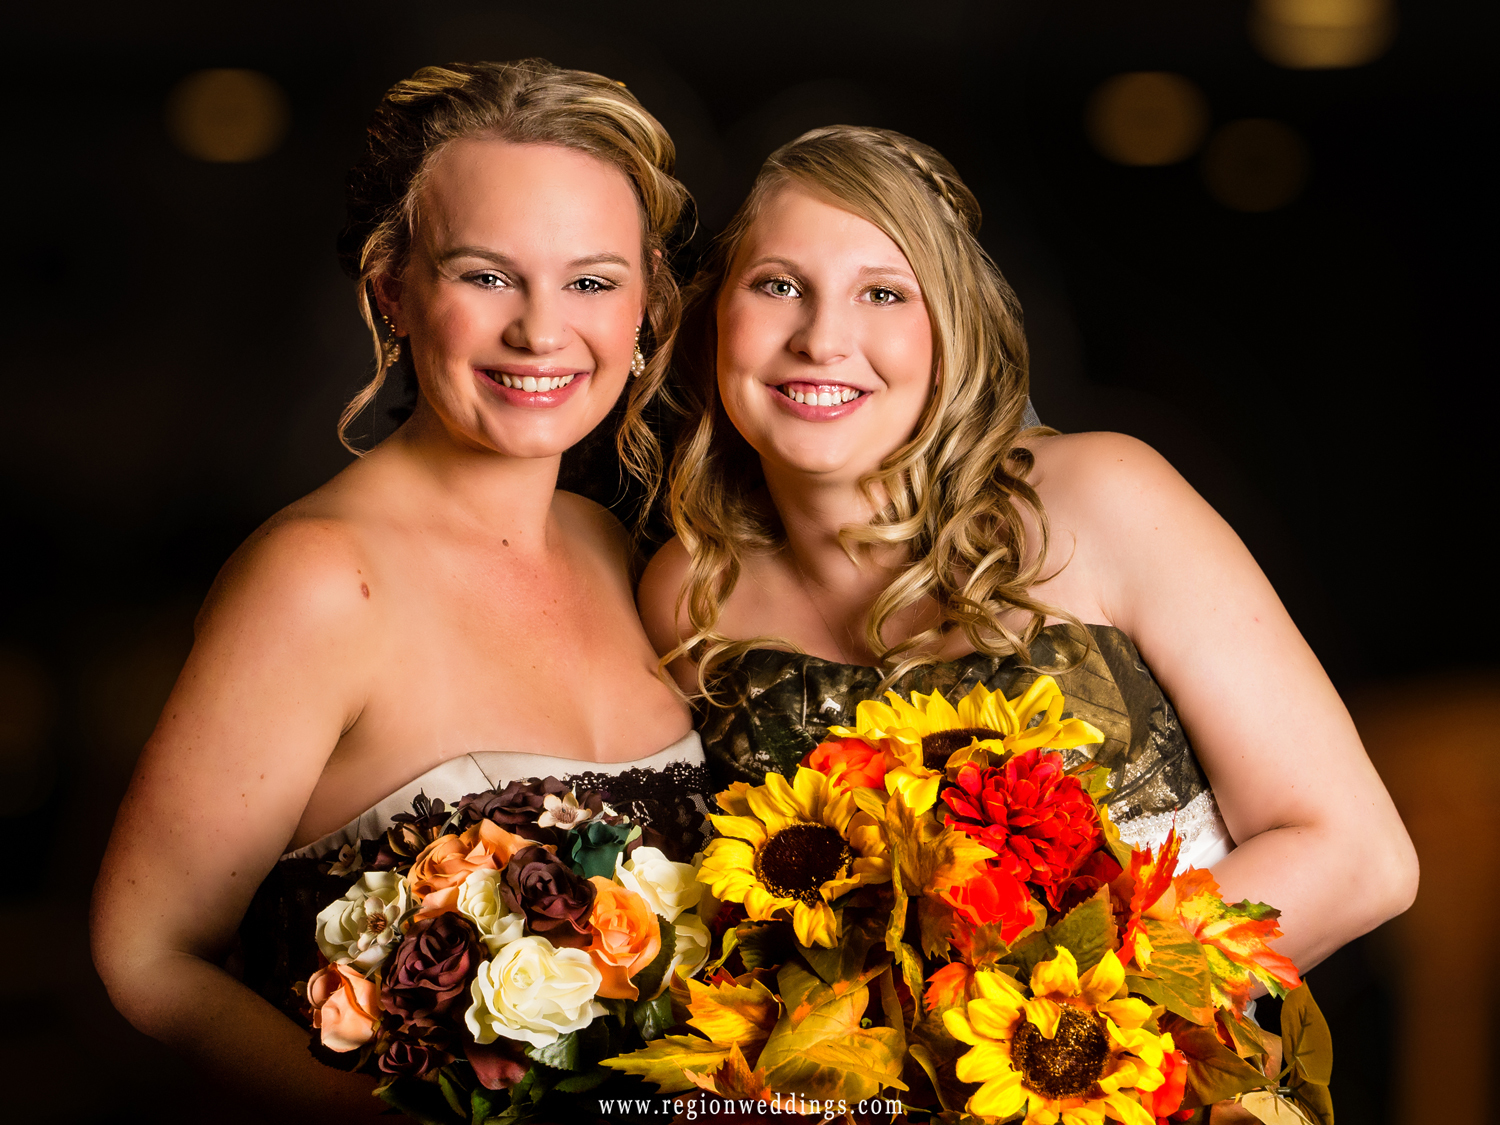 A bride and her bridesmaid shows off their Fall flowers in a portrait.